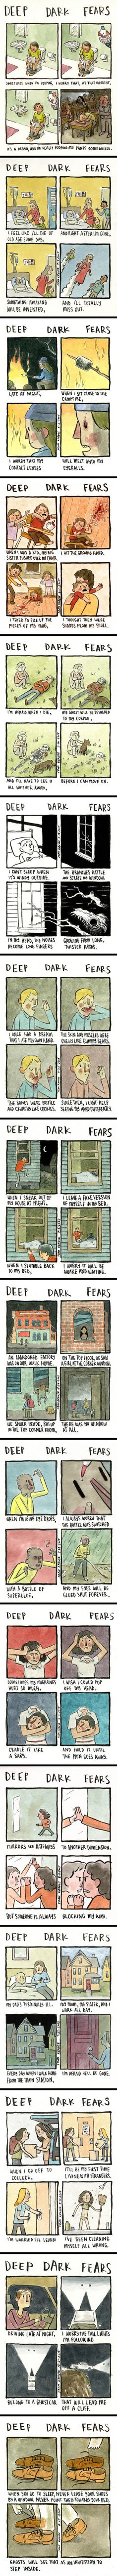 16 Deep Dark Fears Can Never Be So True Describing Your Greatest Nightmares (Part 2)